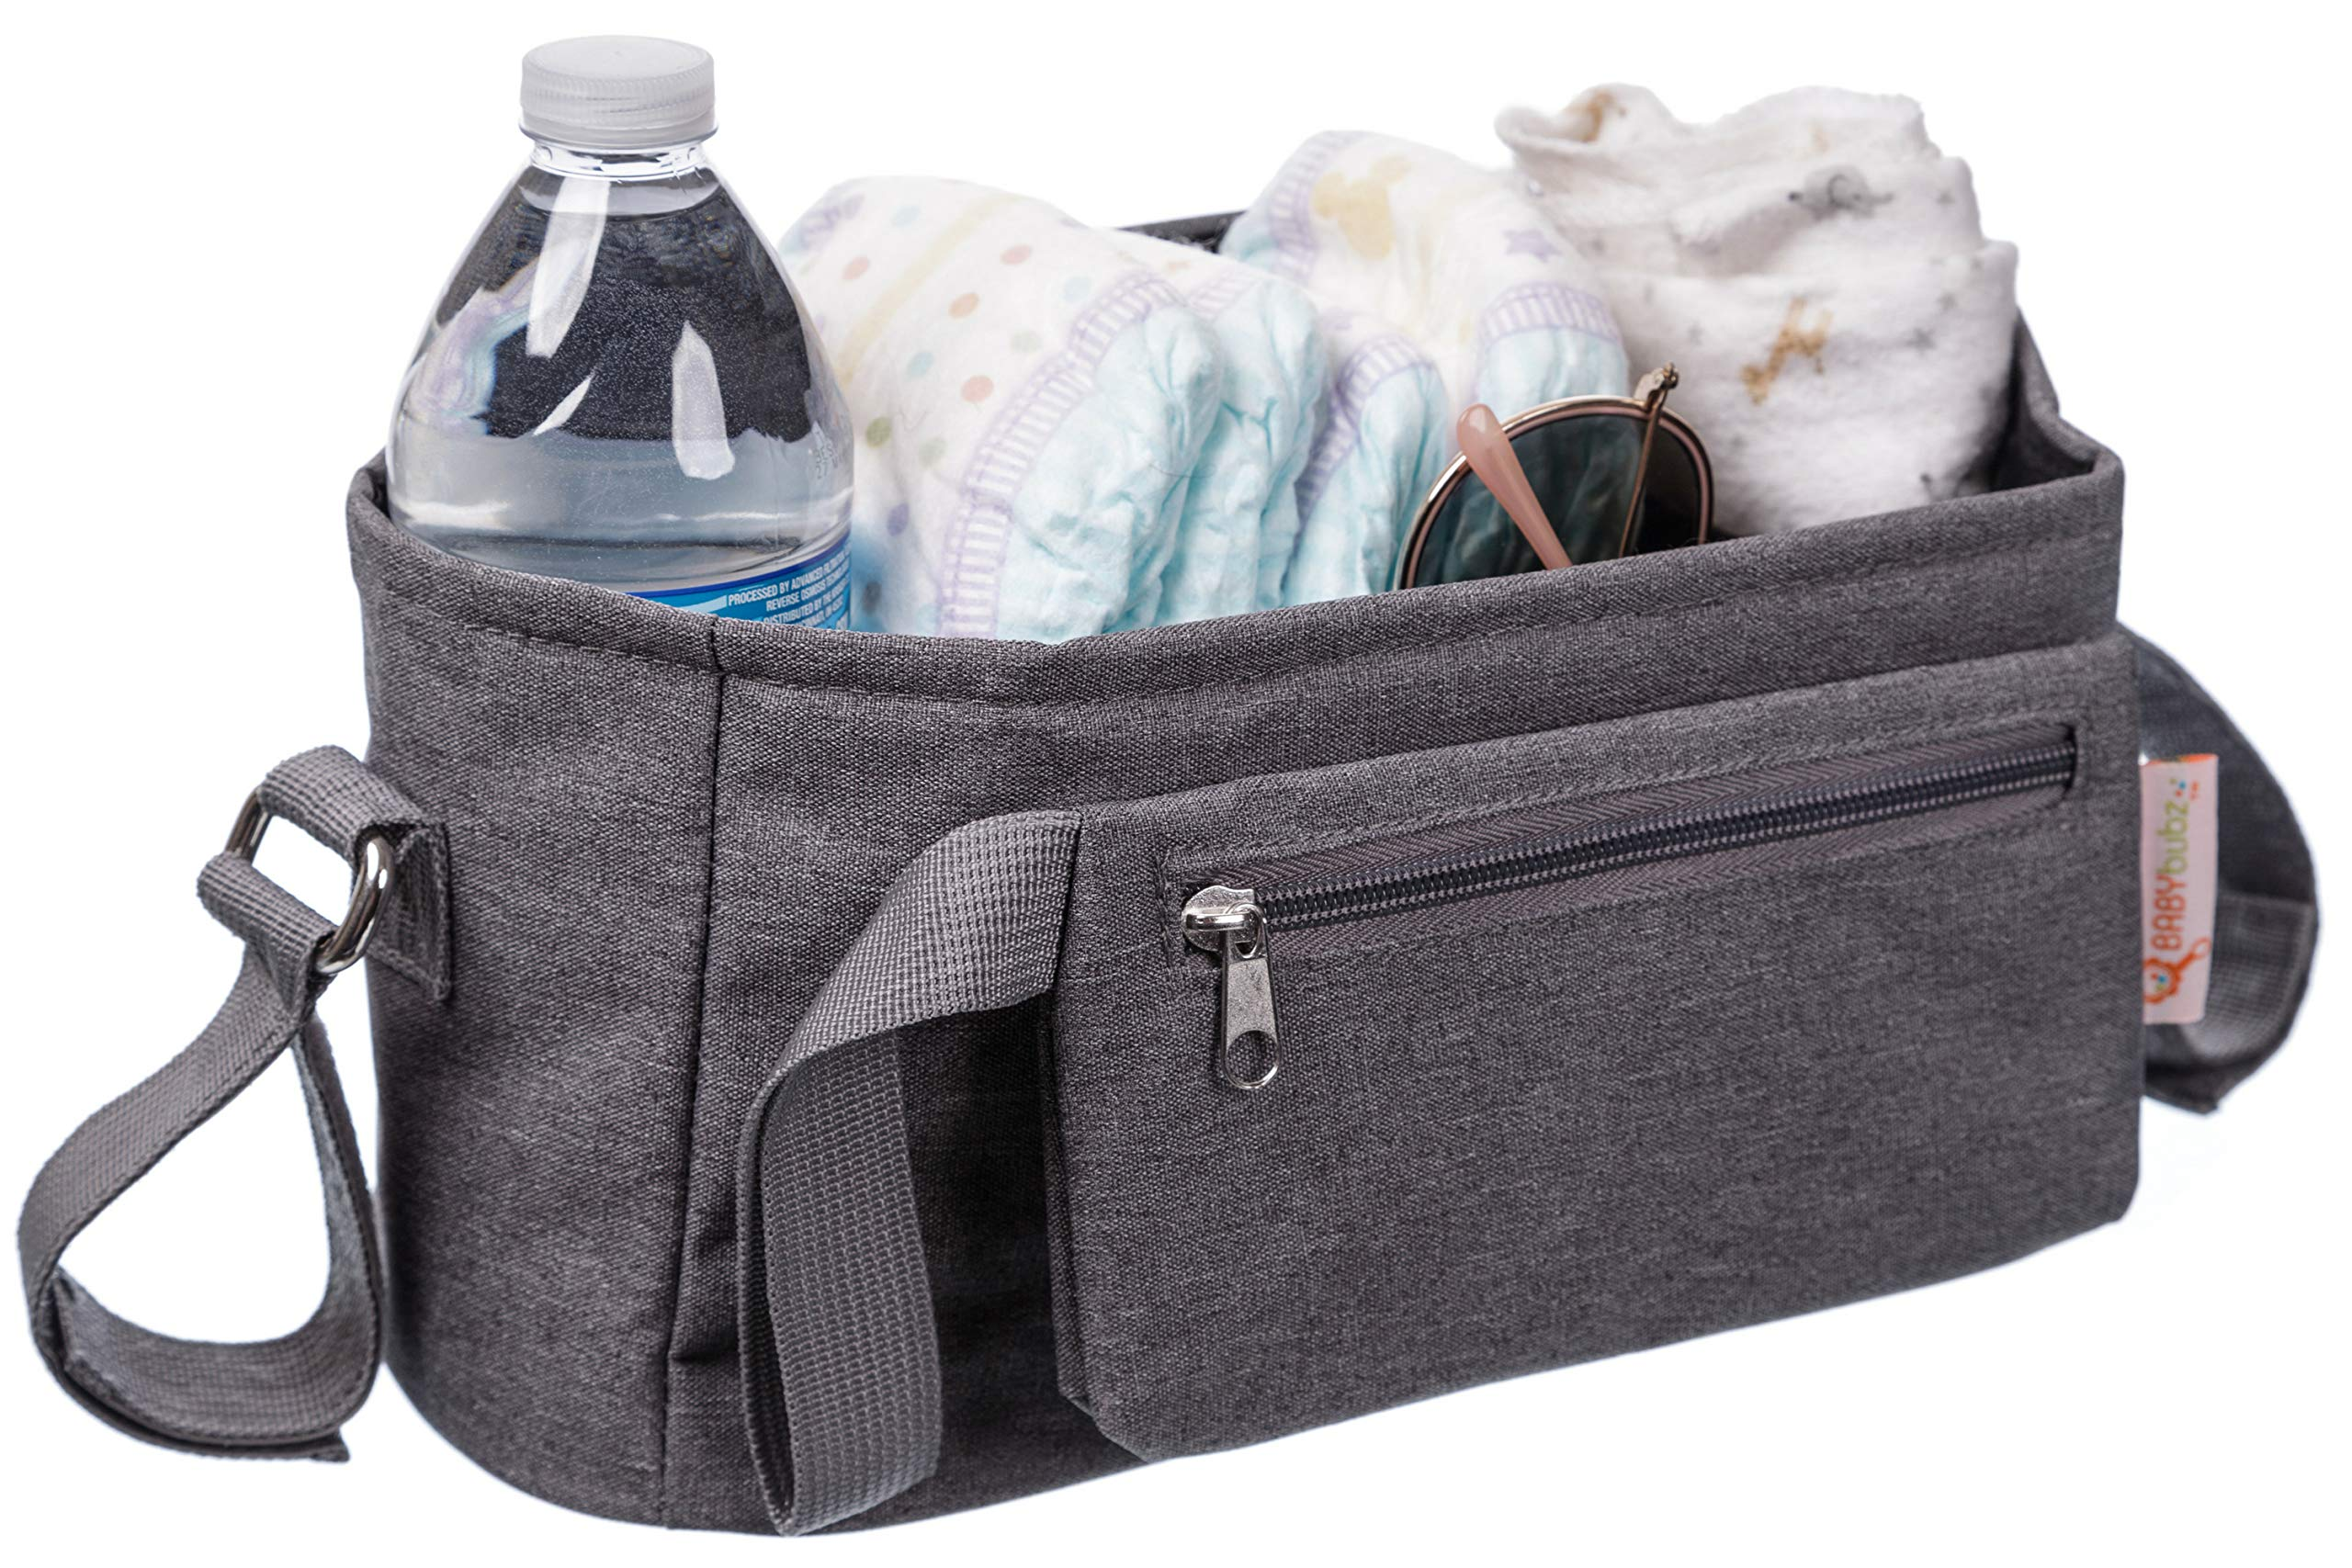 Baby Stroller Organizer Bag for Busy Mom's - Lots of Storage, Durable Cup Holders - Fits All Strollers - Carry Your Phones, Keys, Diapers, Baby Toys, Snacks and Stroller Accessories